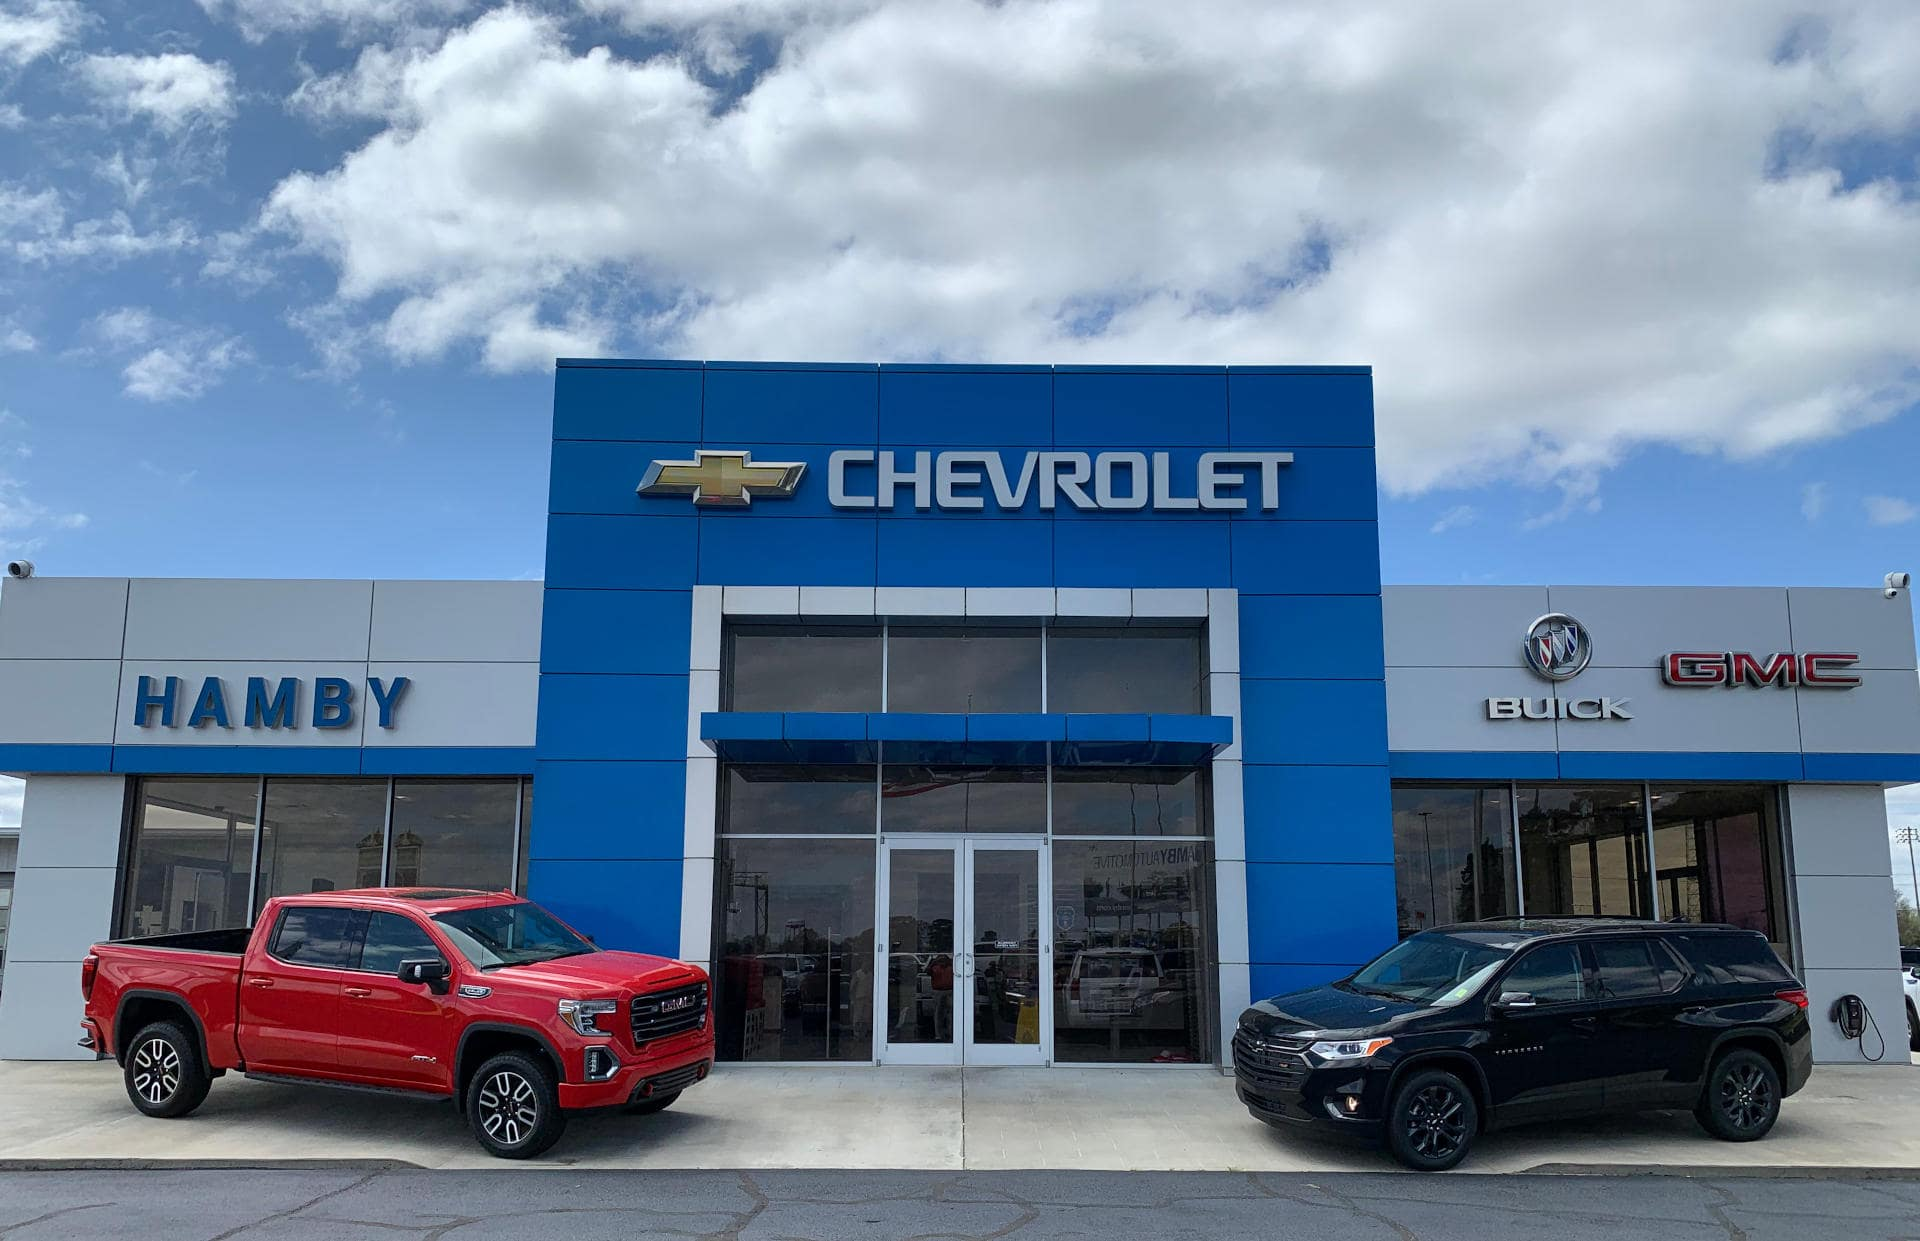 An exterior shot of Hamby Chevrolet.